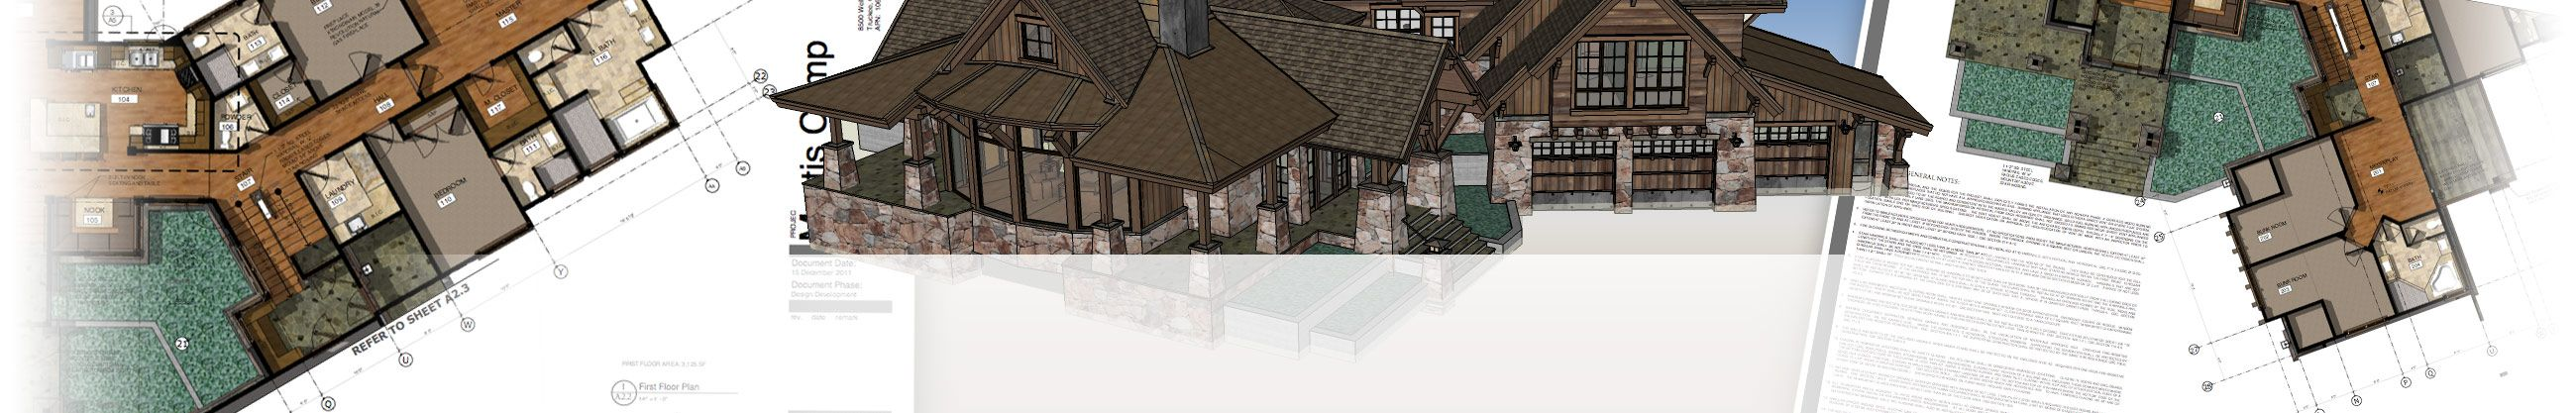 Now you can get #Sketchuptraining in #London from SEE-IT-3D, who is the official authorized training centre in UK. You can become an expert in architecture, engineer or in the field of construction after getting trained from us.  #sketchuptrainingLondon #learnsketchuppro